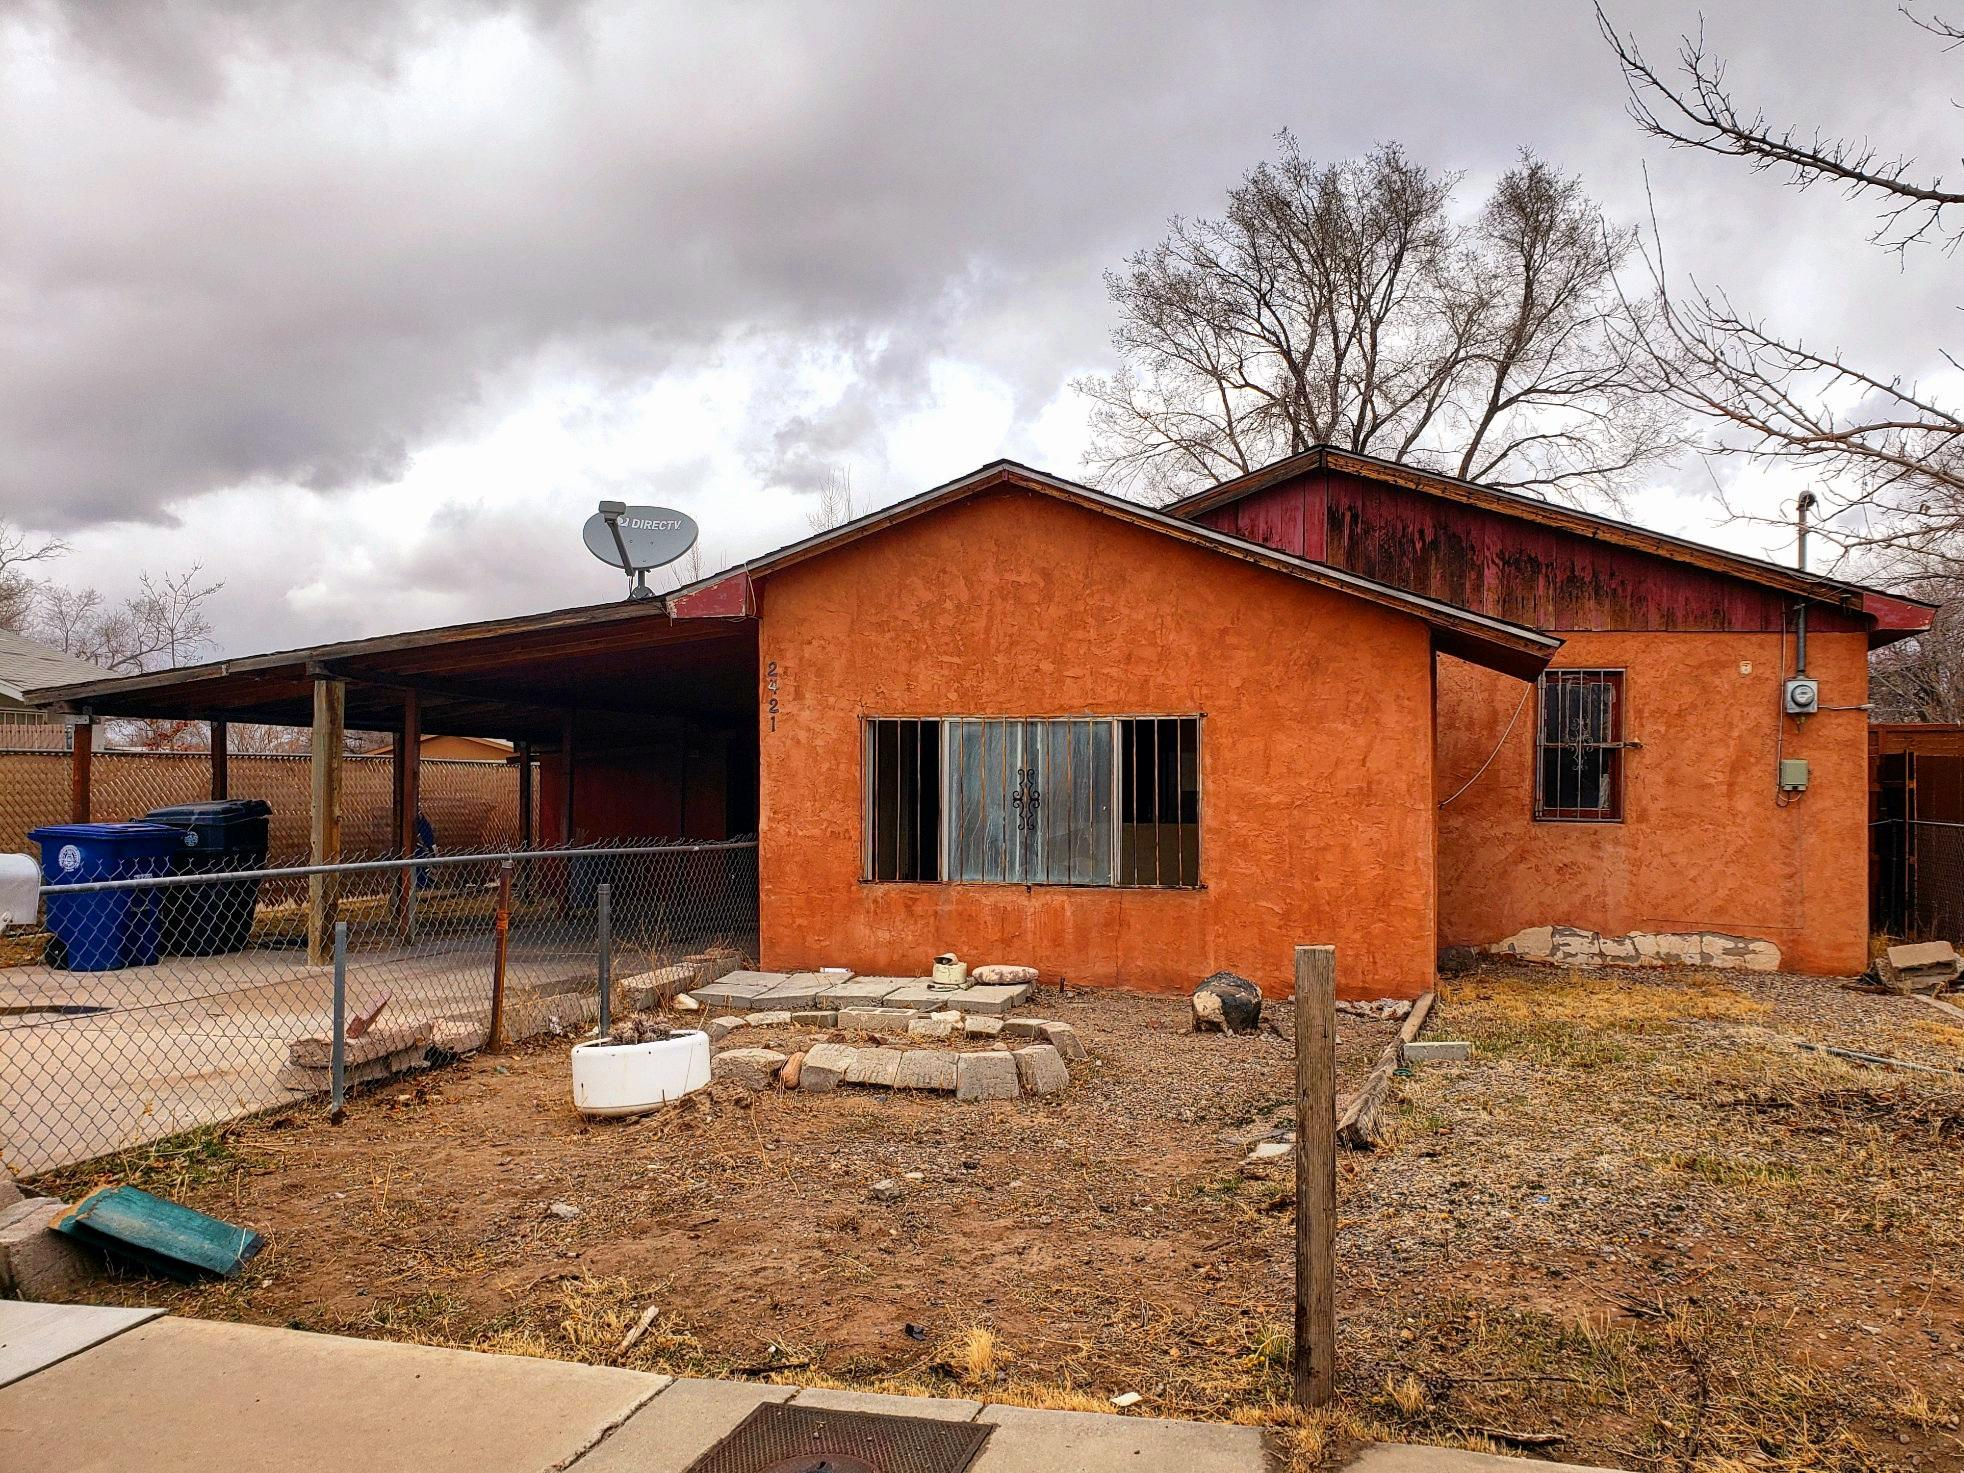 Bring your investor buyers! Home is being sold AS IS. Great location...close to UNM. Home needs some elbow grease and TLC.